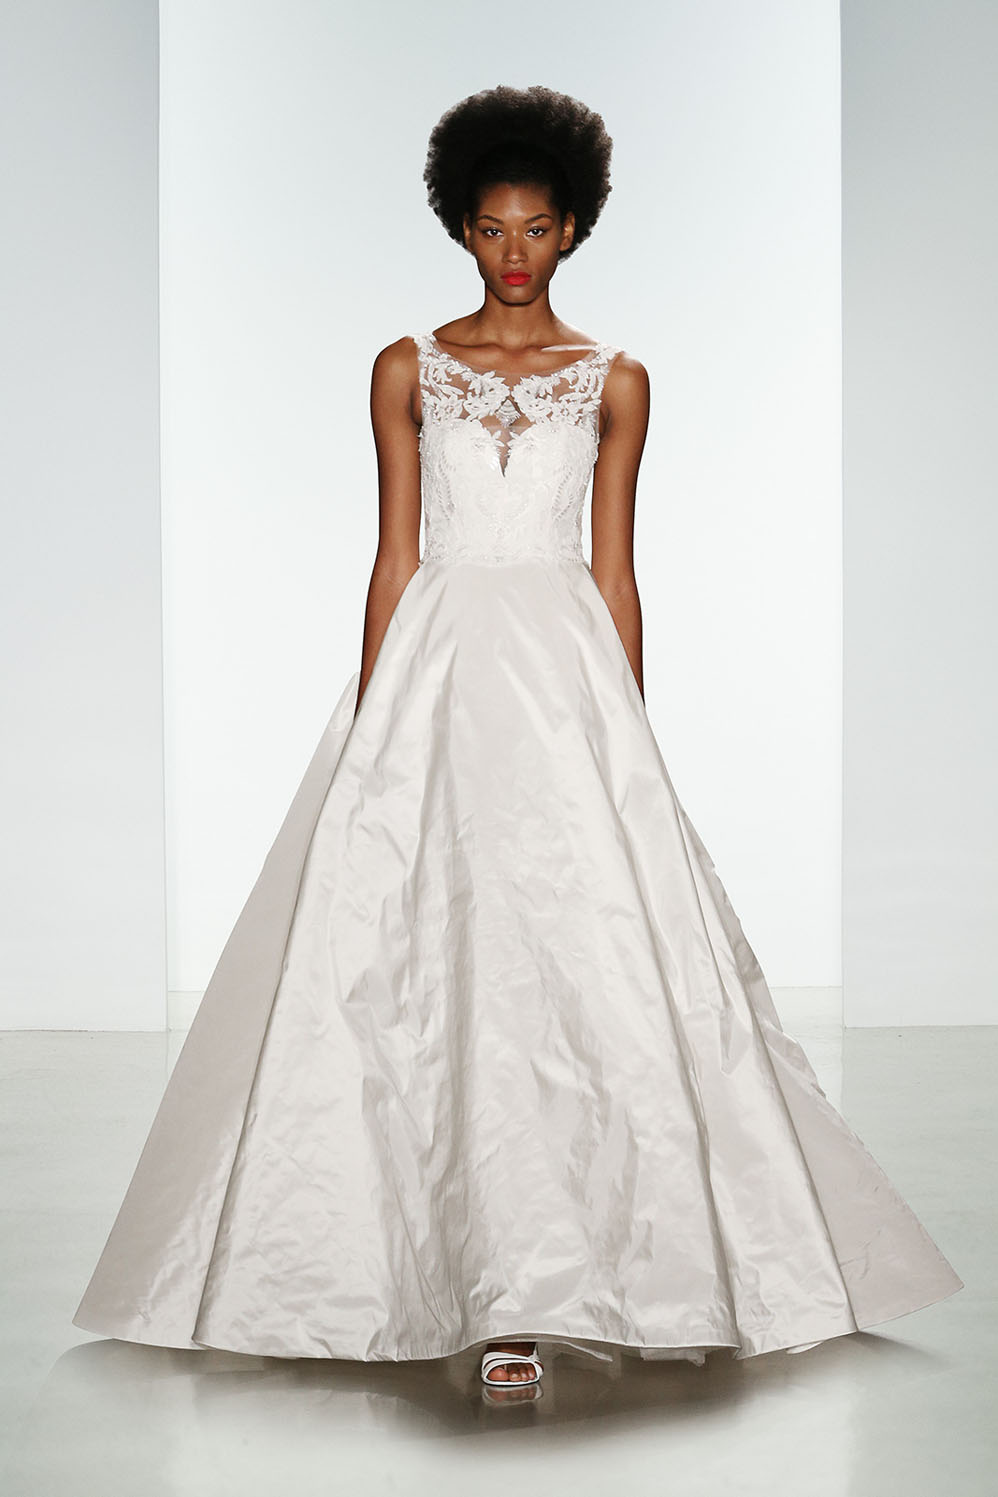 bridal-ballgown-with-crystal-and-lace-amsale-lane.jpg